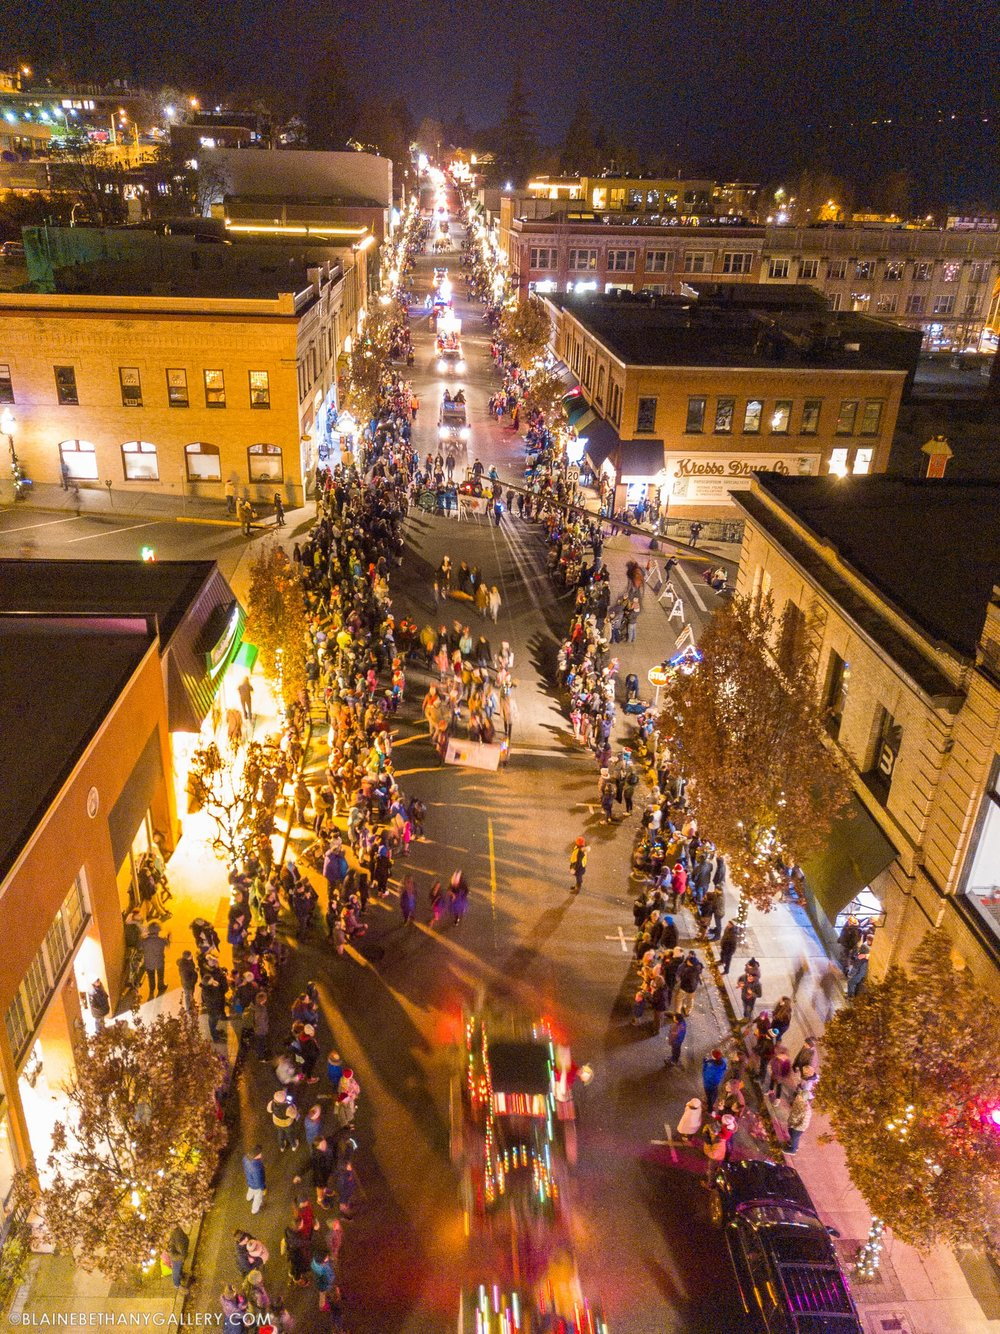 The 2018 Hood River Holiday parade. Photo: (c) Blane Franger, BeautifulHoodRiver.com